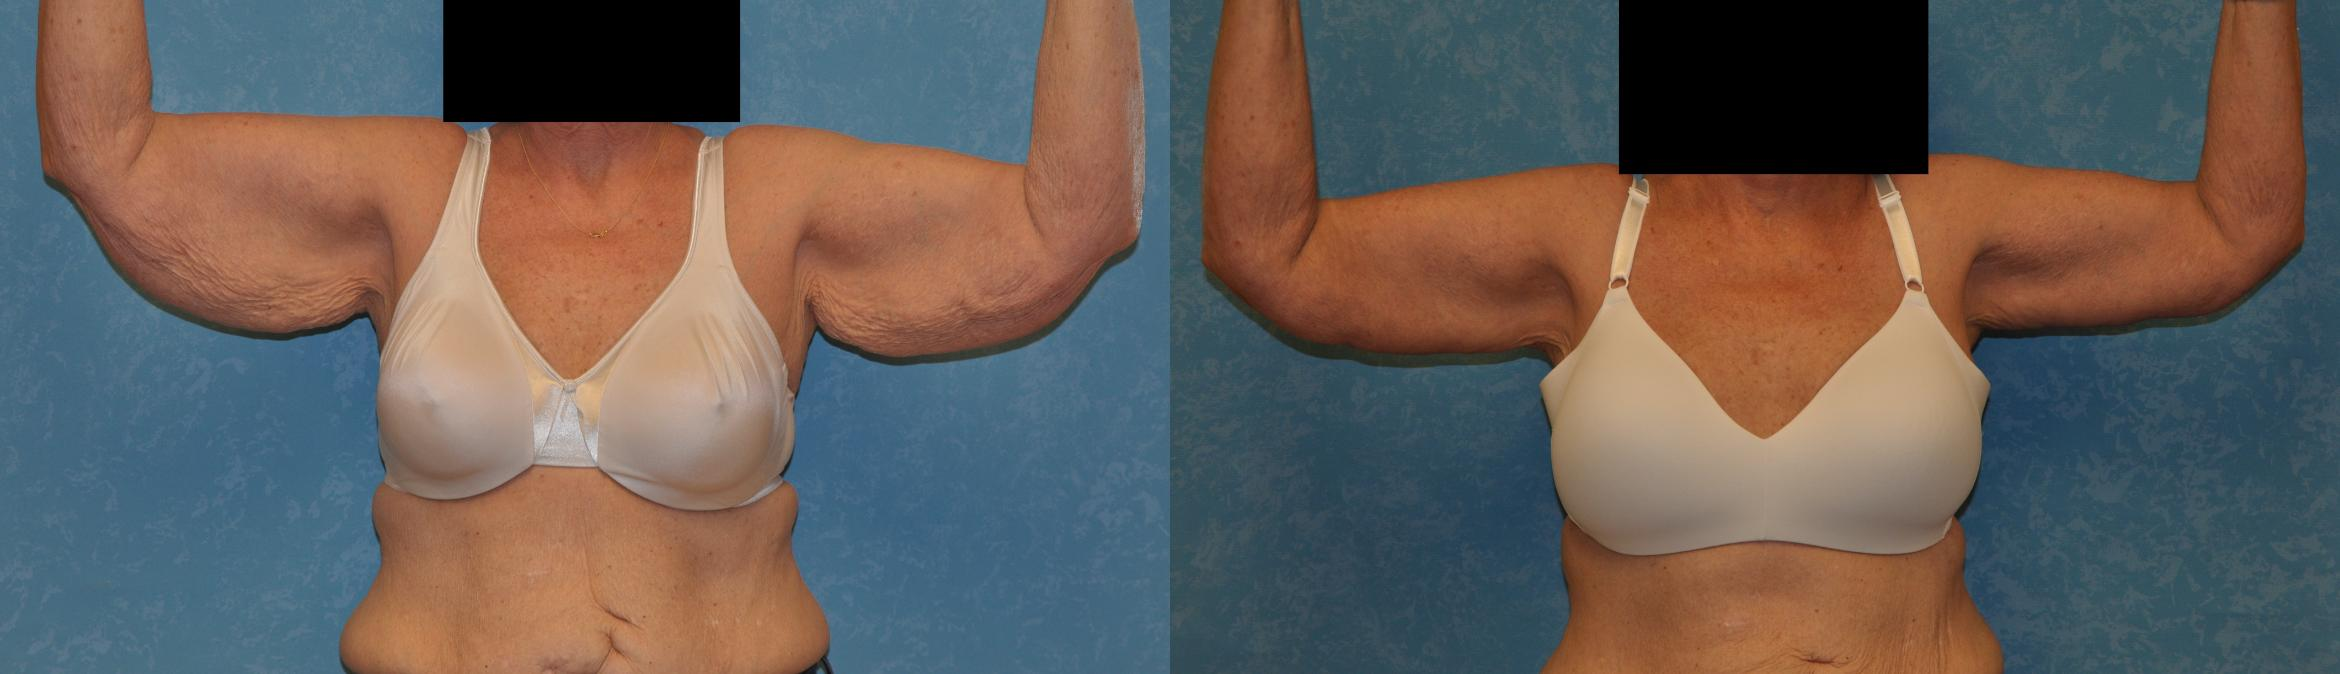 Arm Lift Before & After Photo | Toledo, Ohio | Dr. Craig Colville